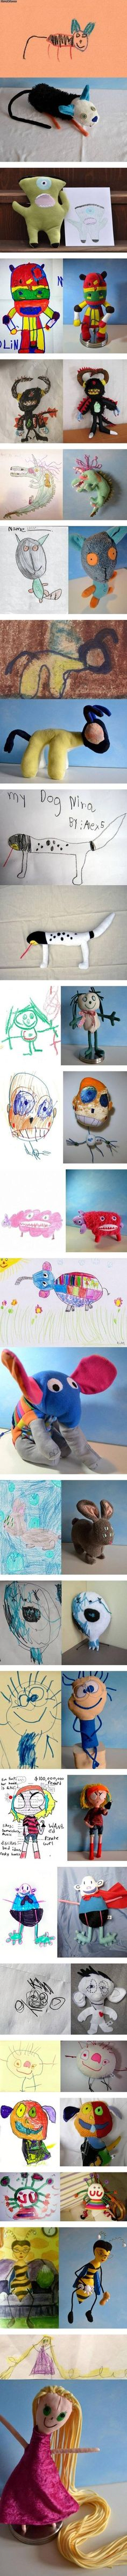 If Children's Drawings Were Made Into Toys